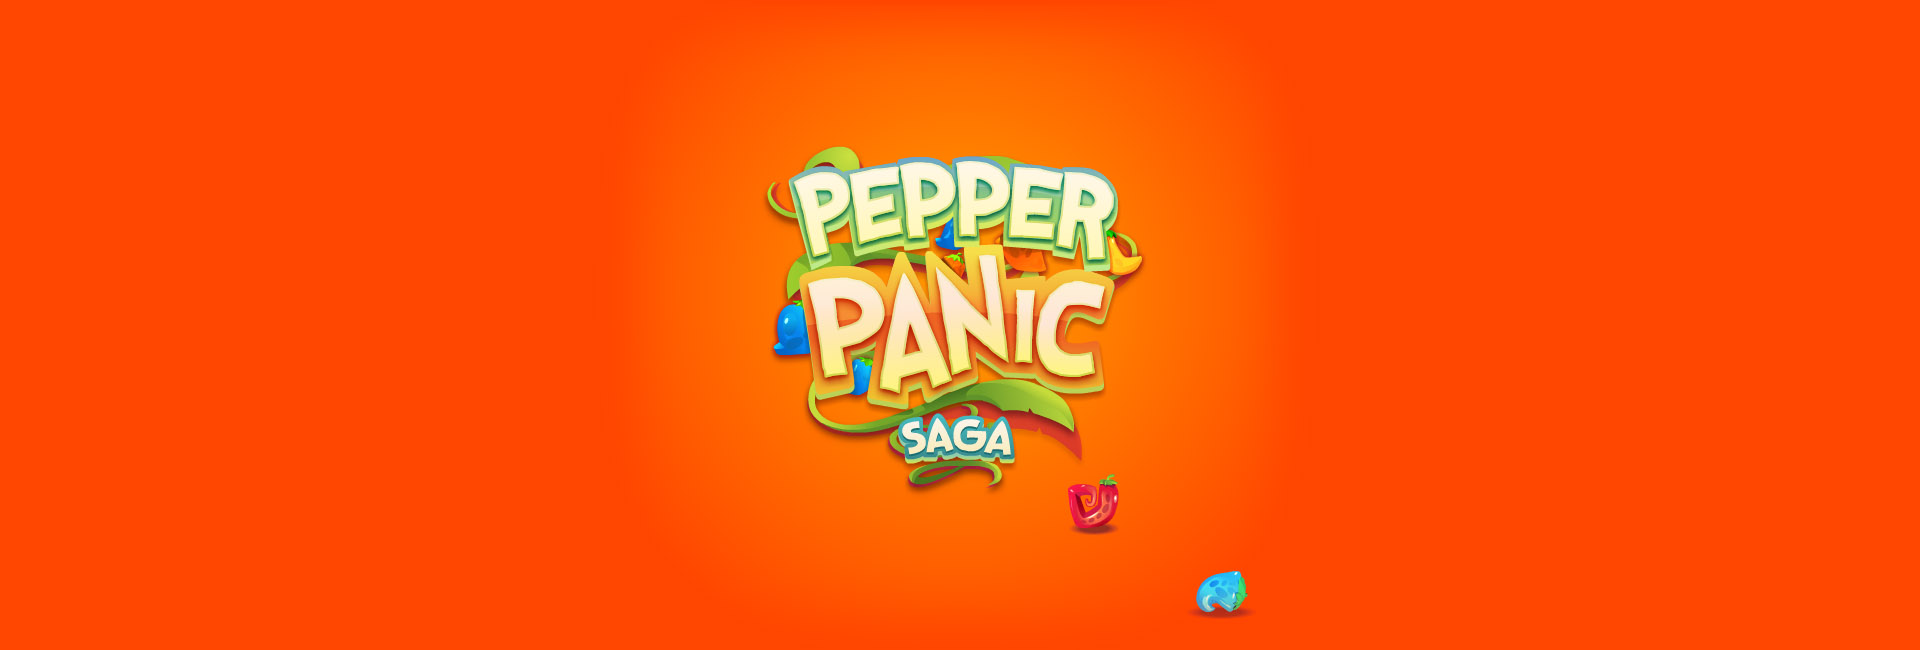 pepperpanic